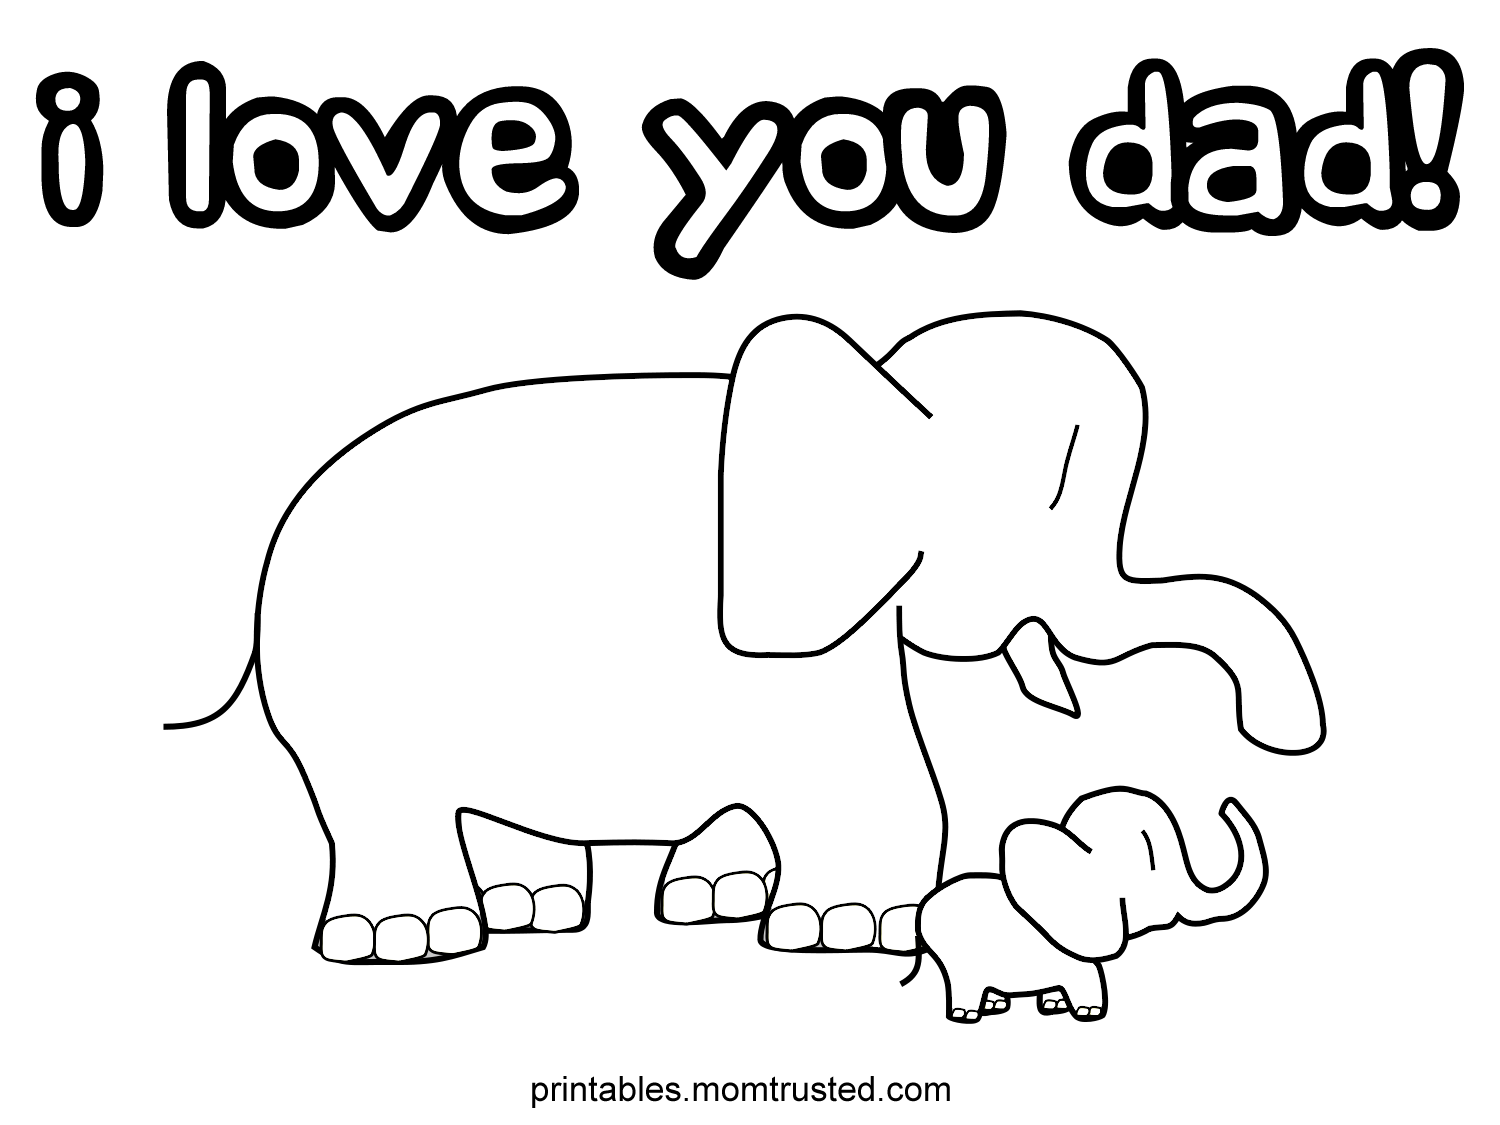 i love you mom and dad pictures i love you mom and dad coloring pages dad love pictures you and mom i